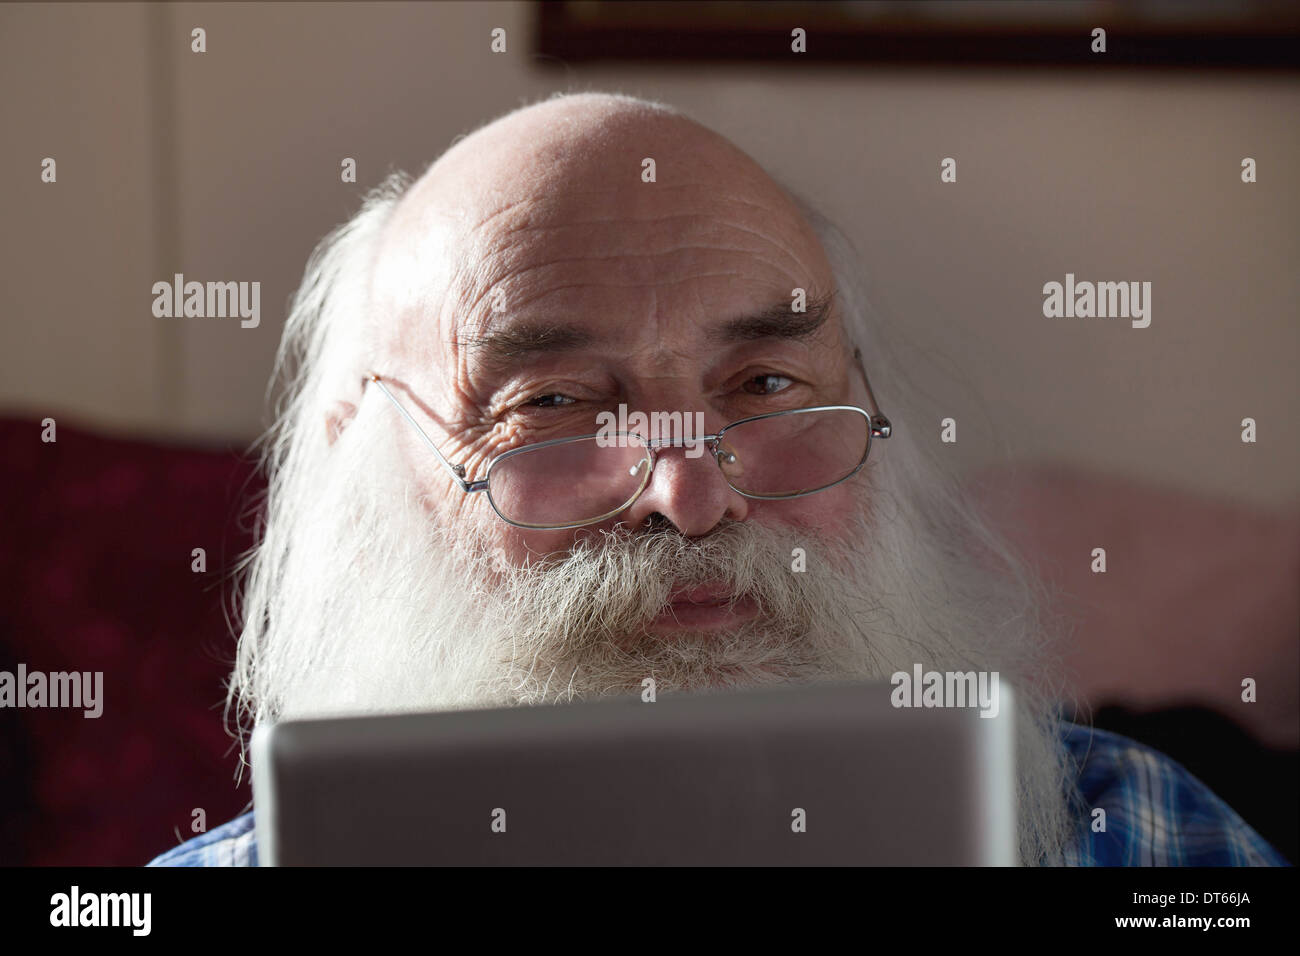 Senior man using digital tablet - Stock Image